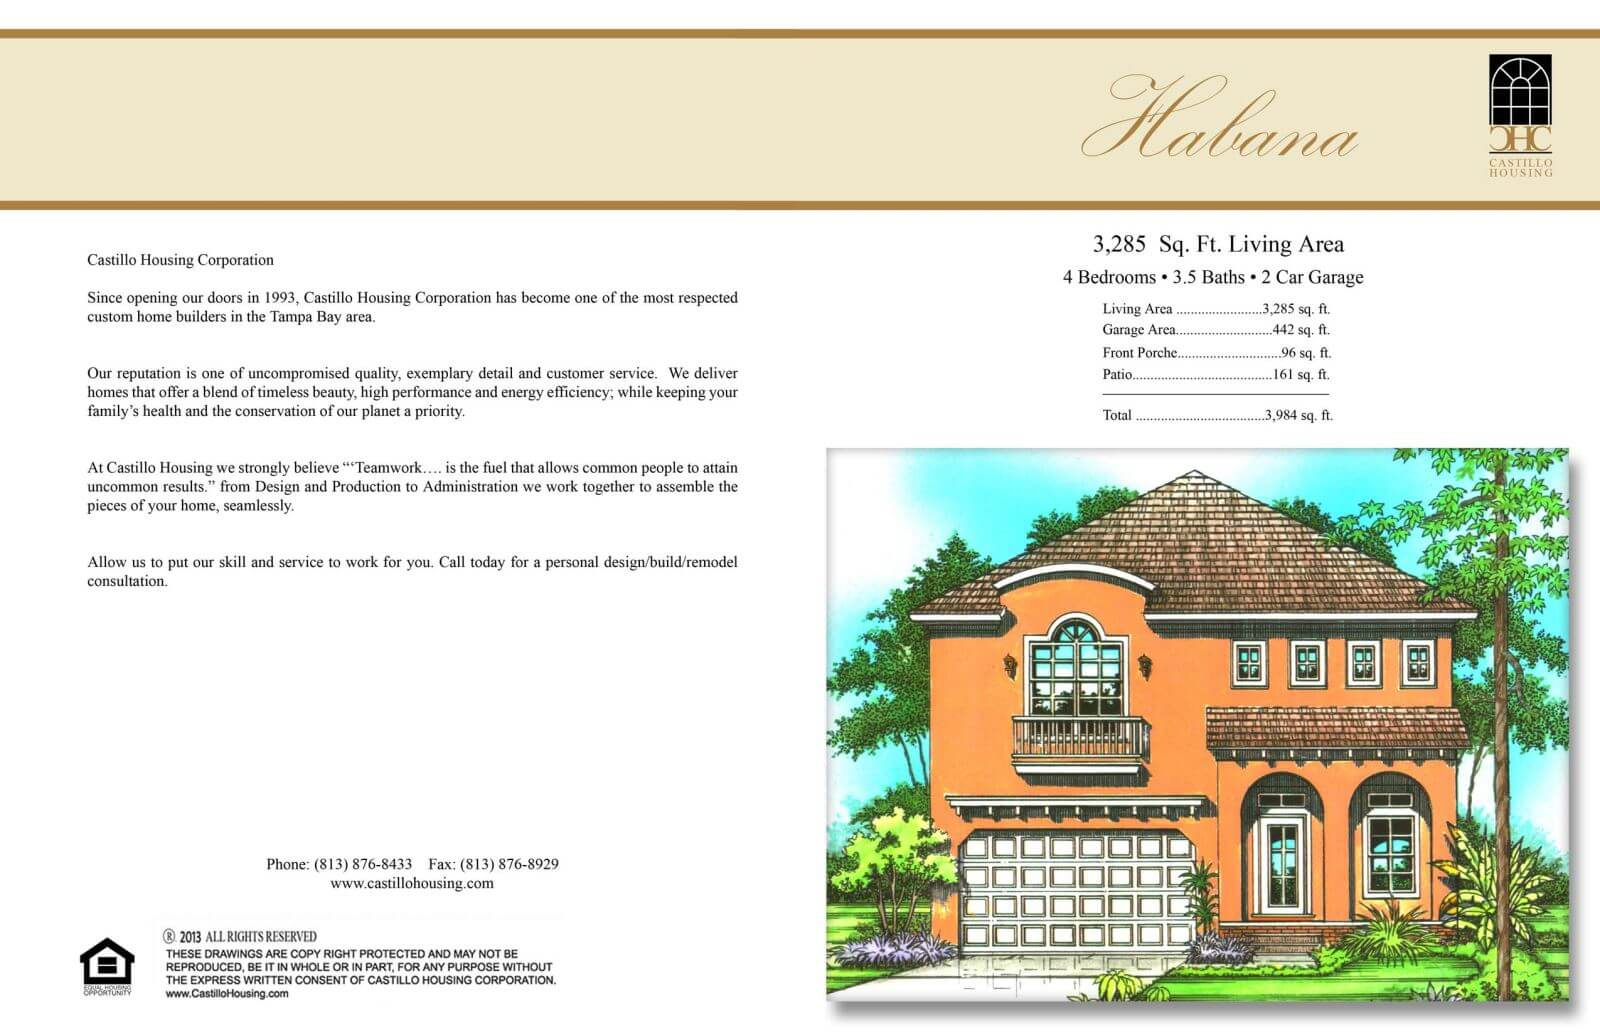 Floor Plans,3,001 SQ FT TO 3,500 SQ FT,1079